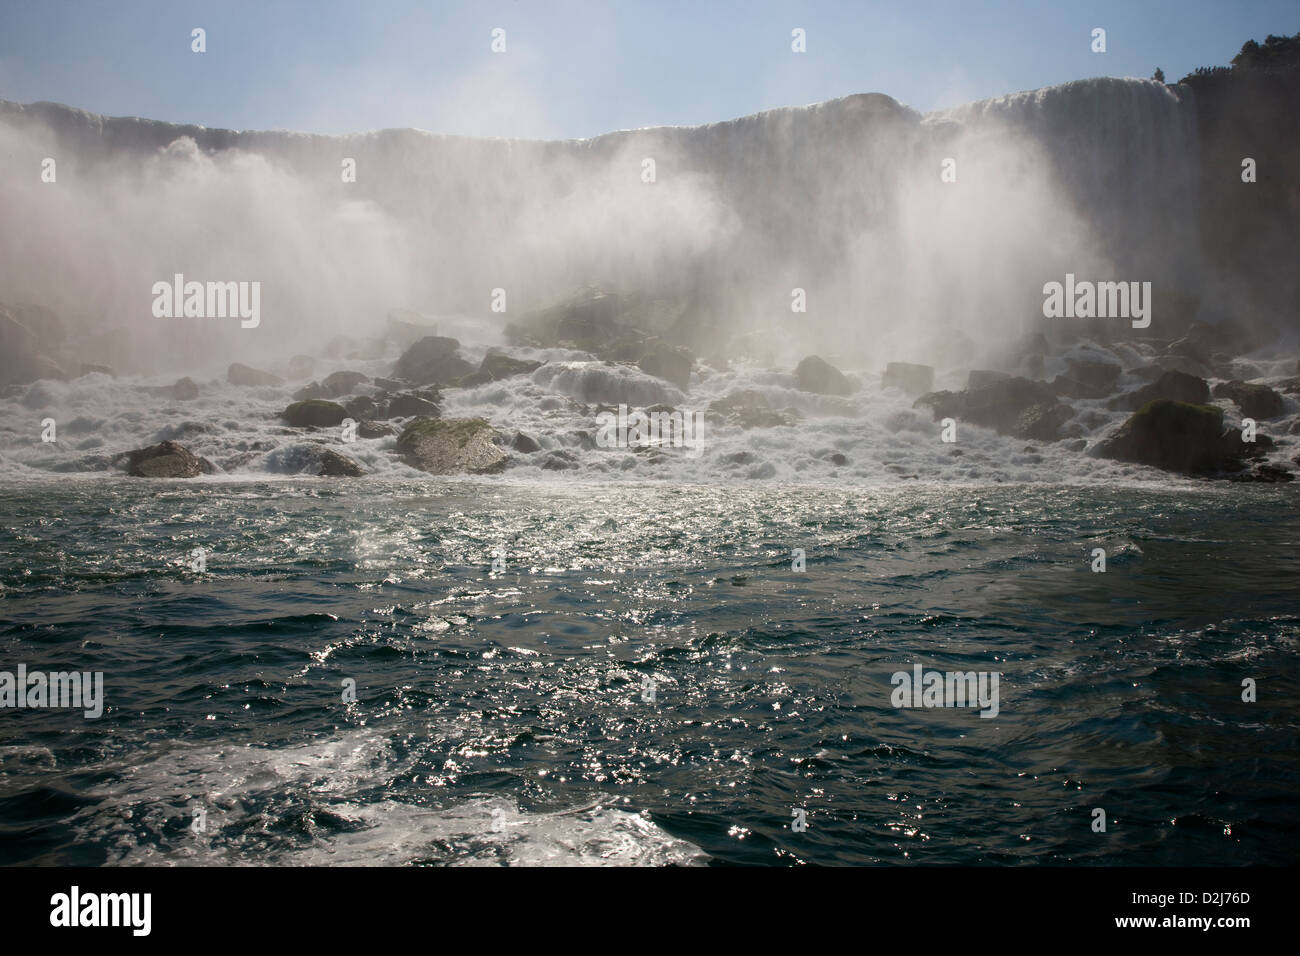 Niagara Falls, Canada, viewed from the Maid of the Mist tourist boat - Stock Image